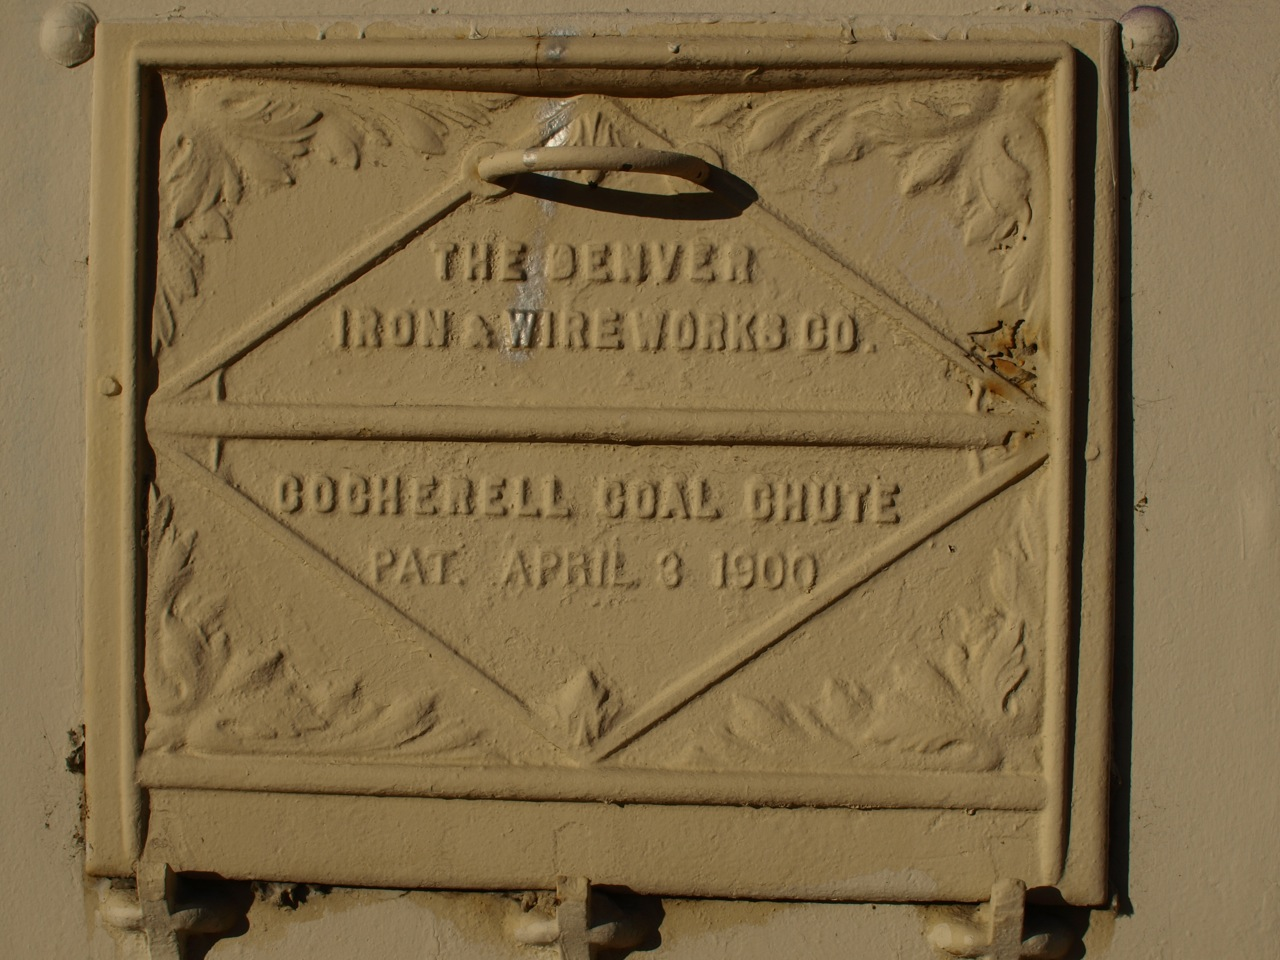 Denver Ironworks Cocherell Coal Chute Patented April 3